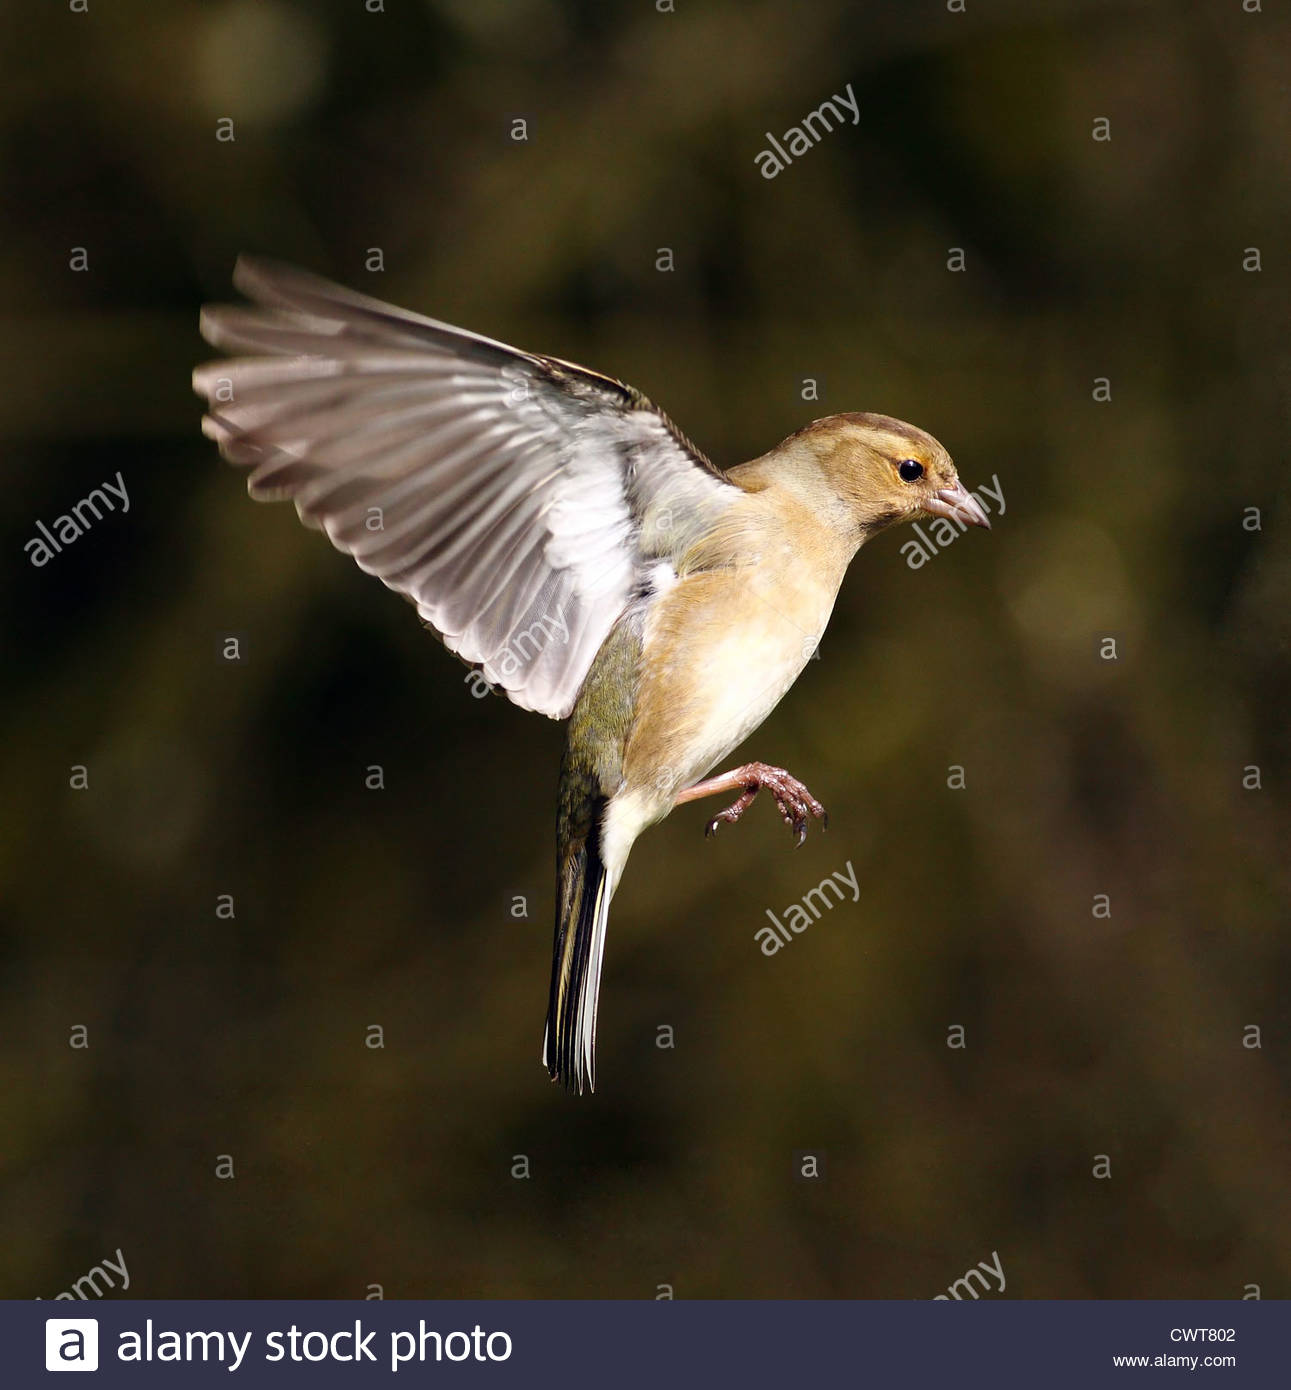 Chaffinch in flight - Stock Image